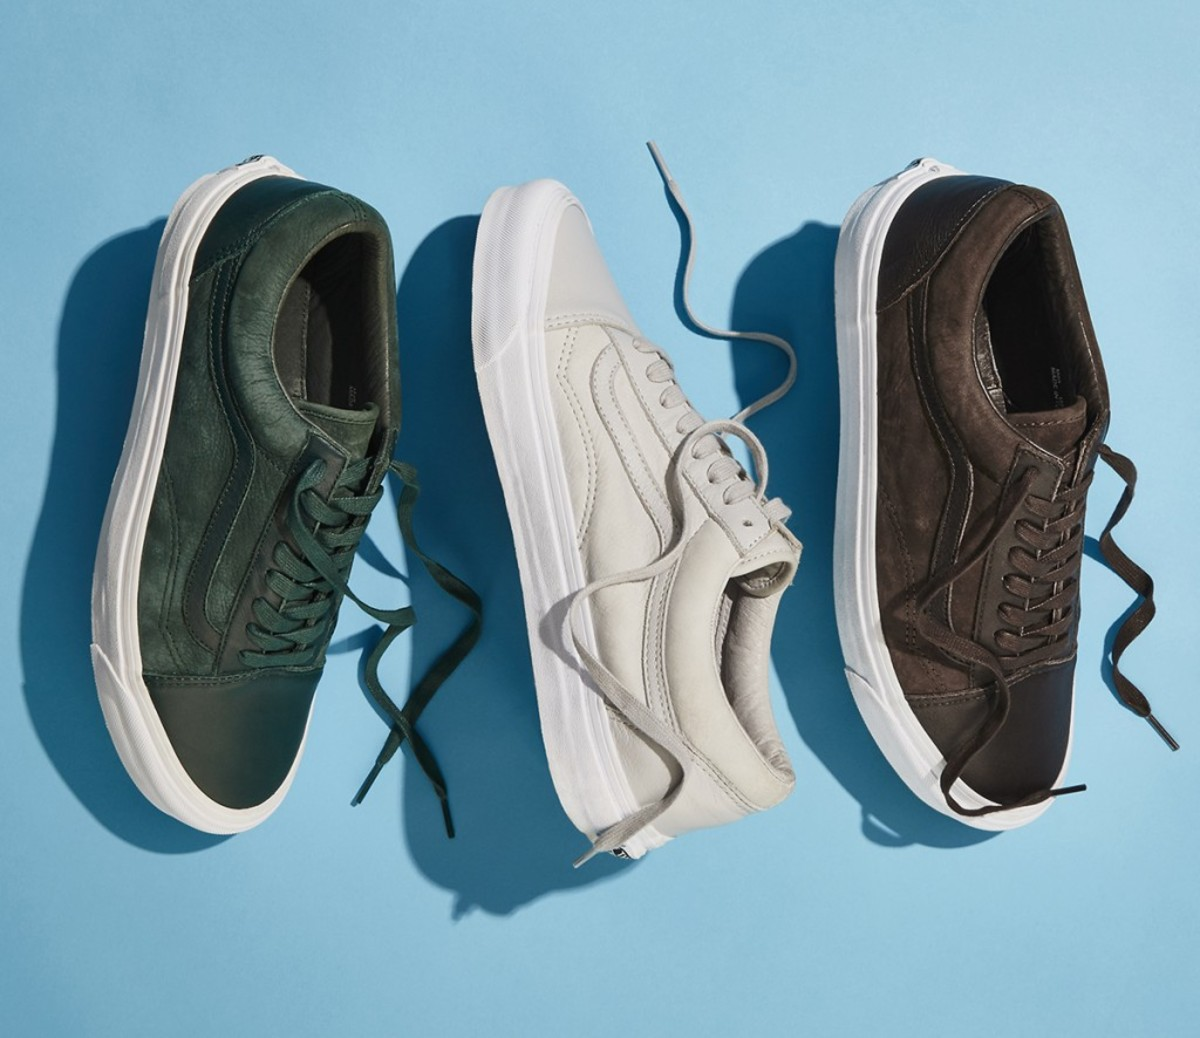 barneys-vans-2017-bny-sole-series-collaboration-04